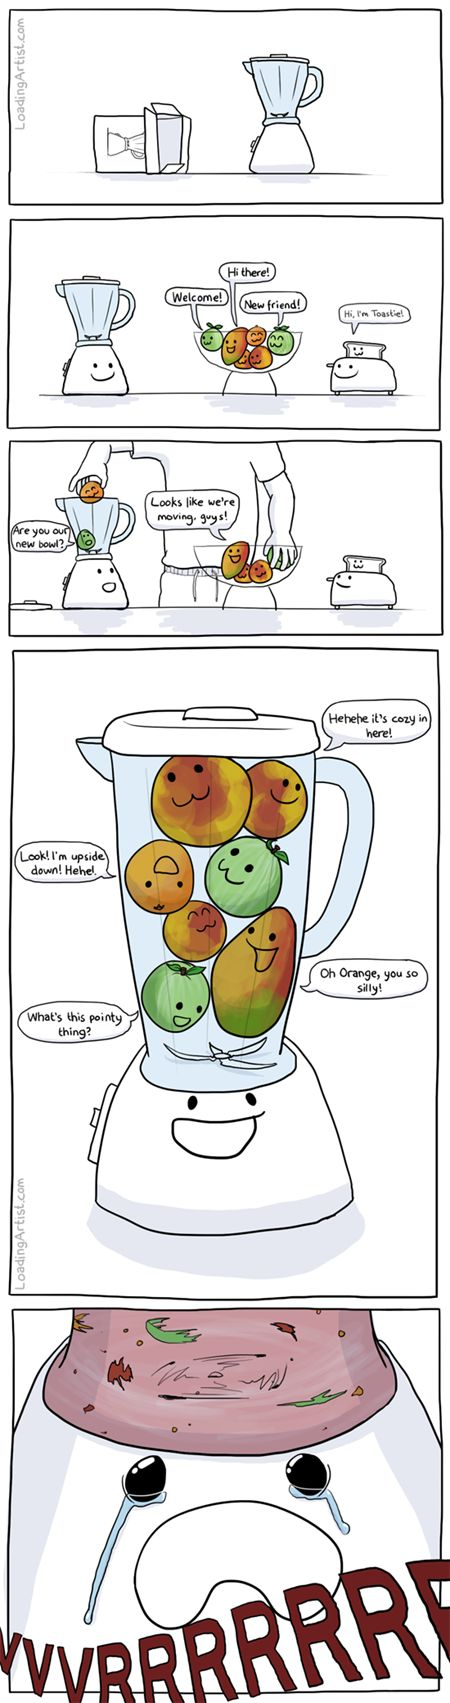 I will never look at smoothies the same again